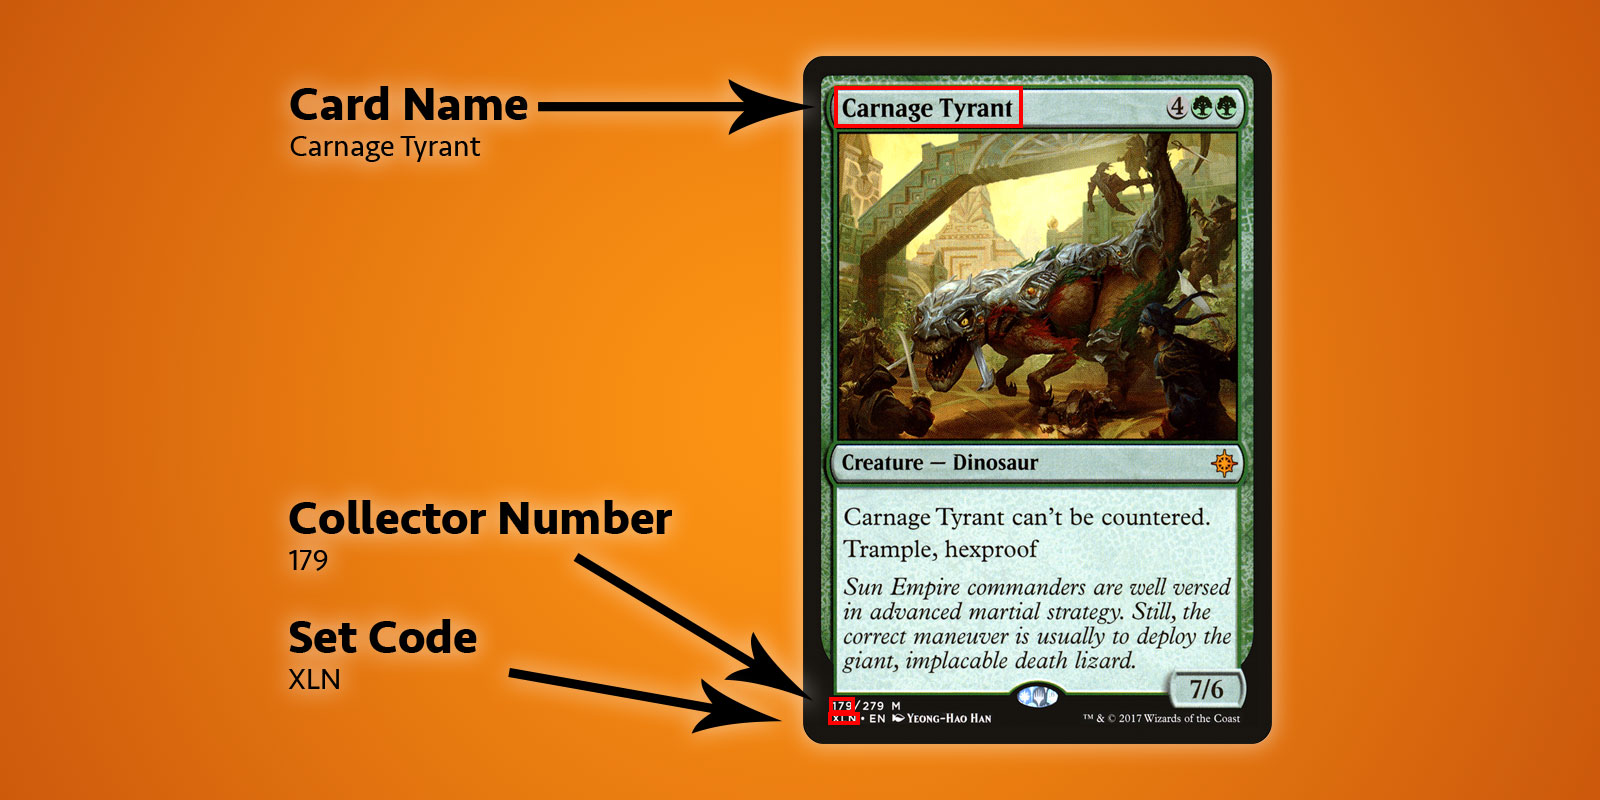 The components of a Magic card to extract with Vision